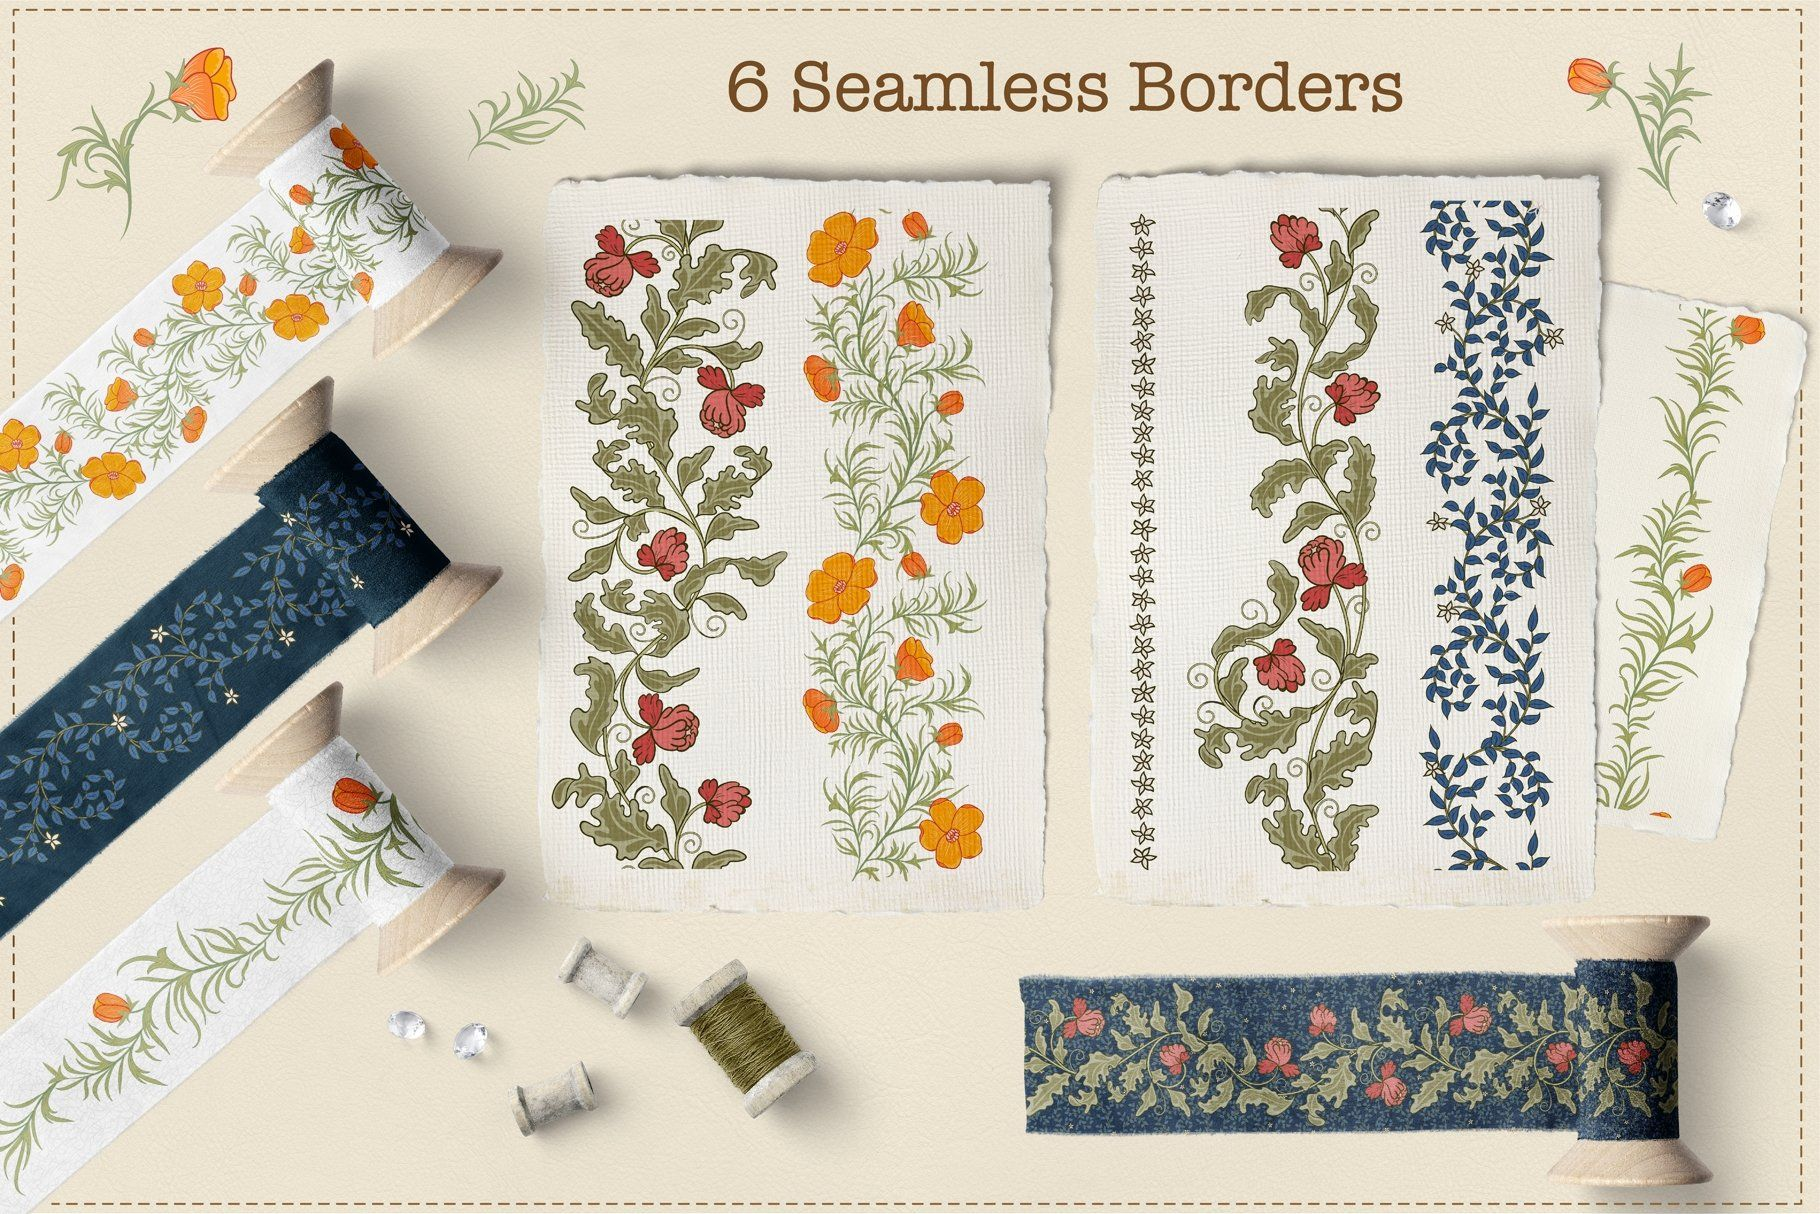 Flower Garden By Irina Skaska On Creativemarket In 2020 Hand Drawn Flowers Printing On Fabric Gift Wrapping Paper